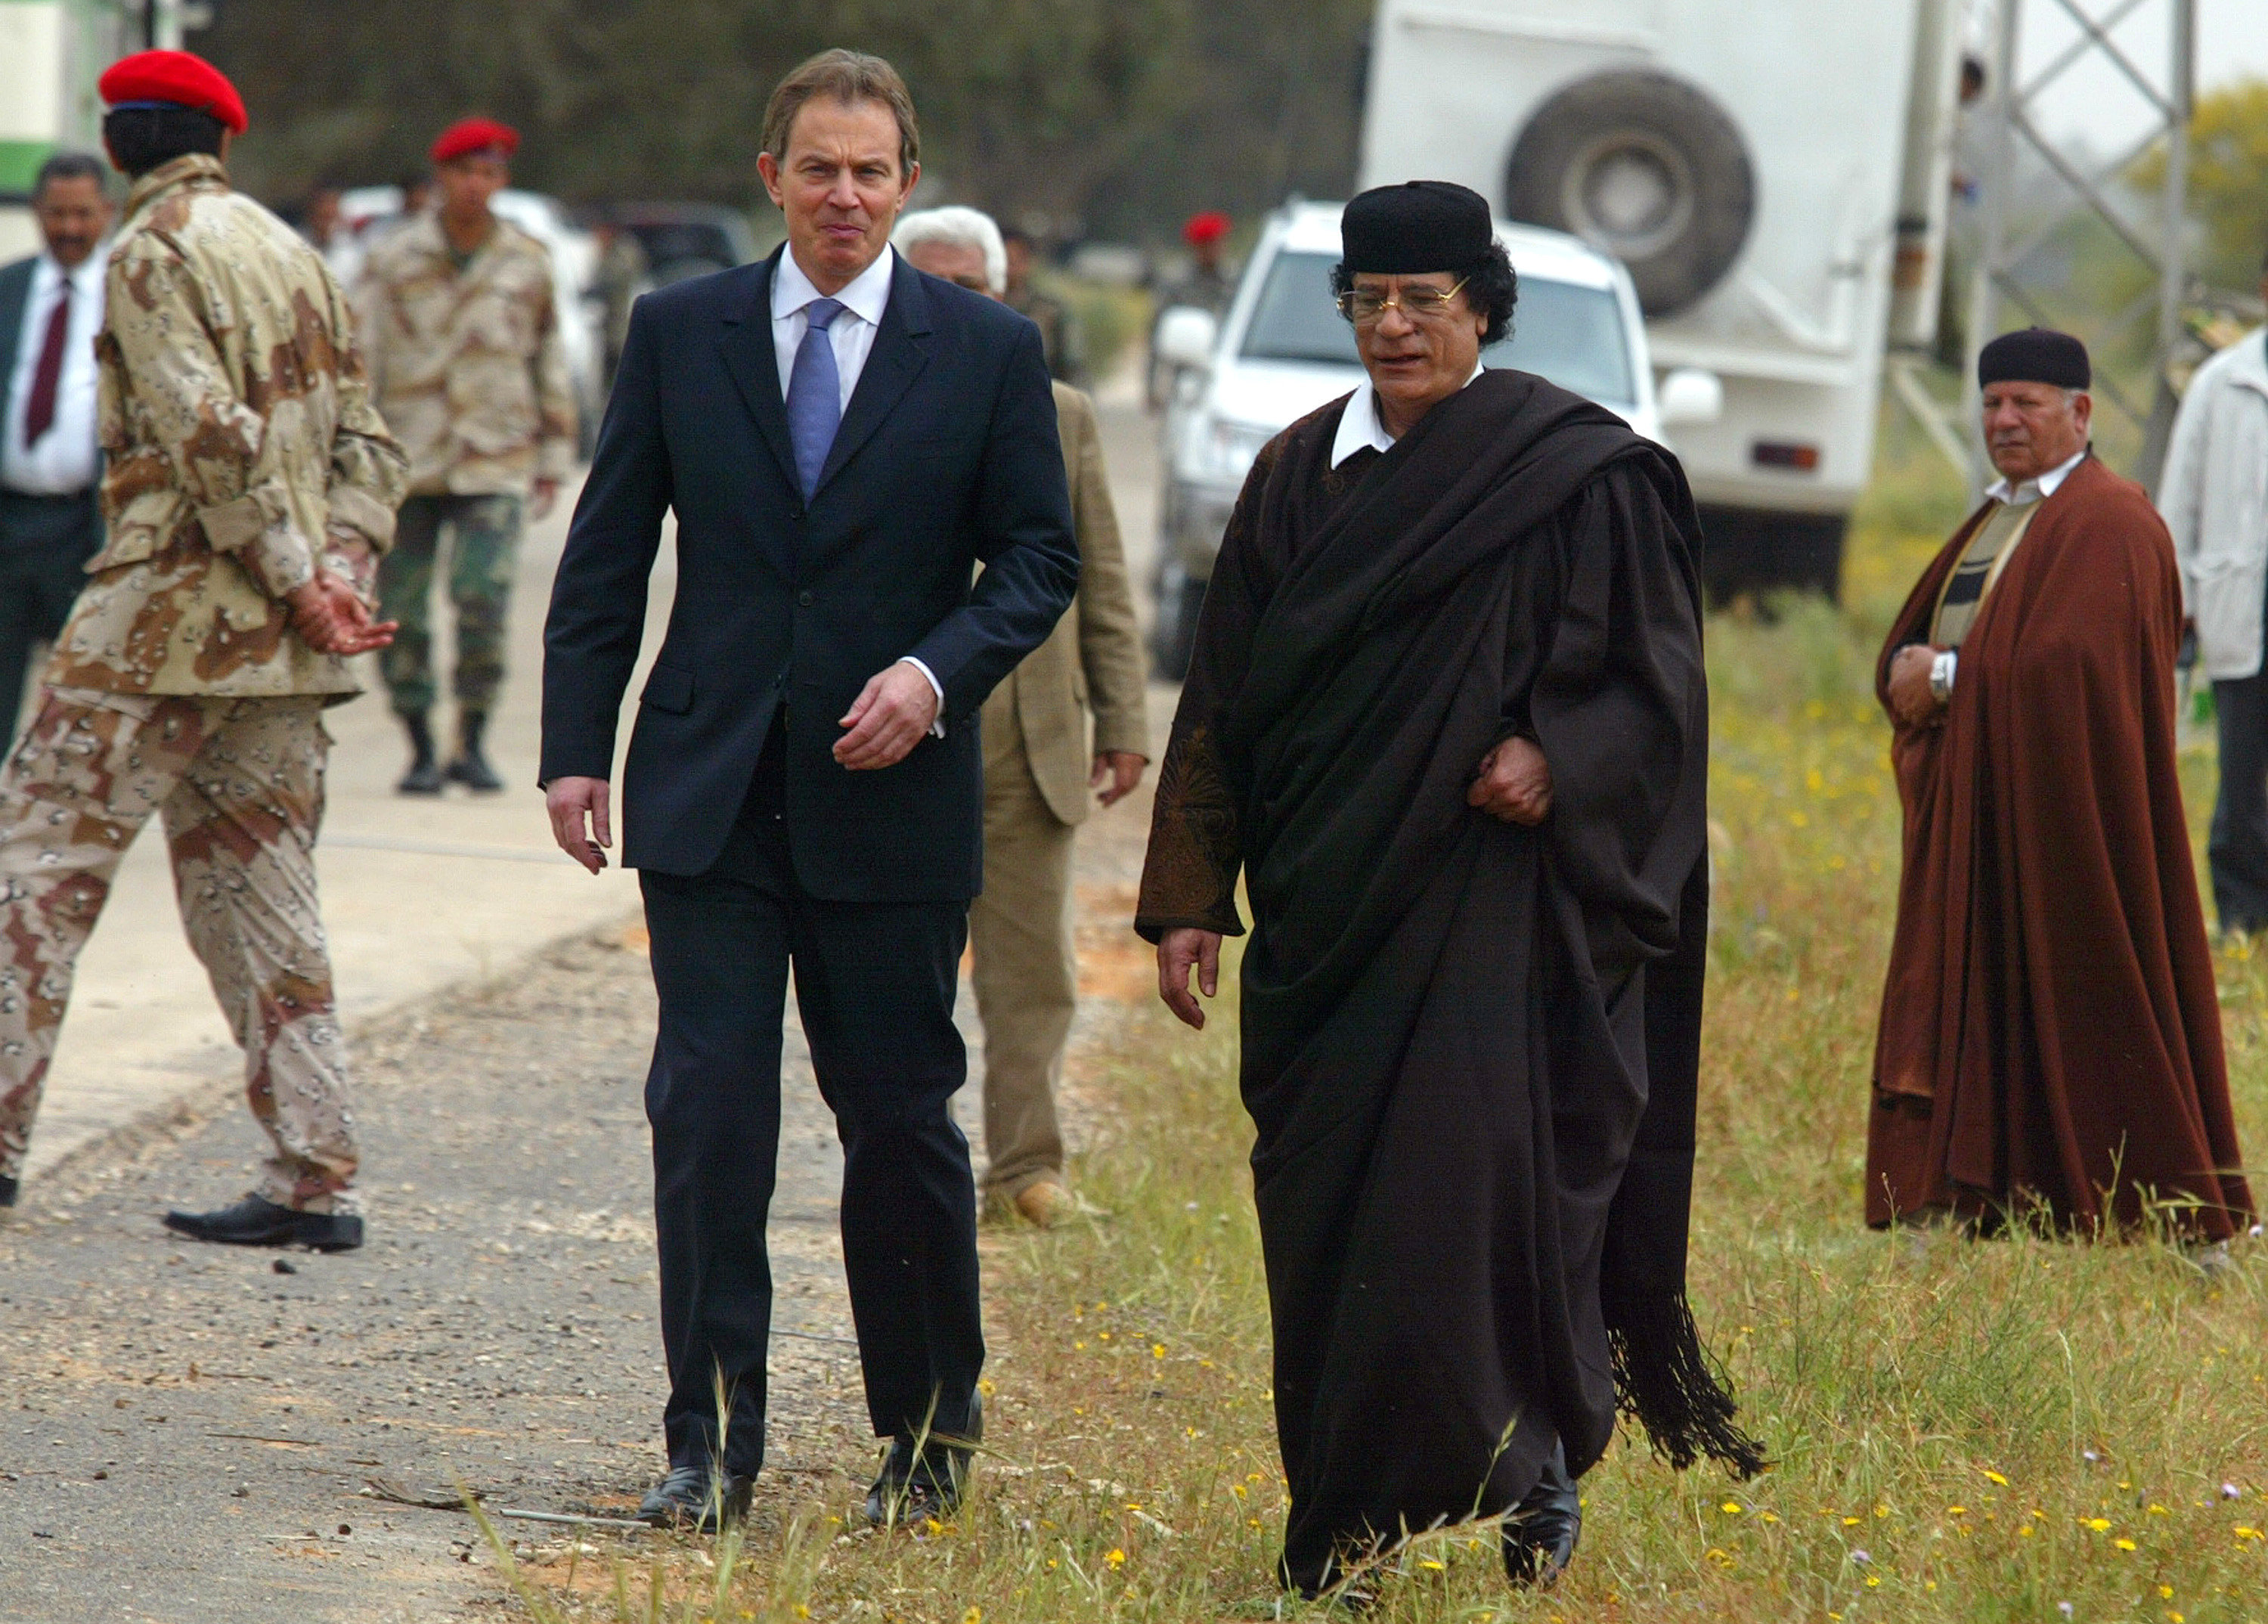 Libyan leader Col. Moammar Gadhafi, at right, with Britain's Prime Minister Tony Blair as they meet outside Tripoli, in Libya, Thursday, March, 25, 2004.